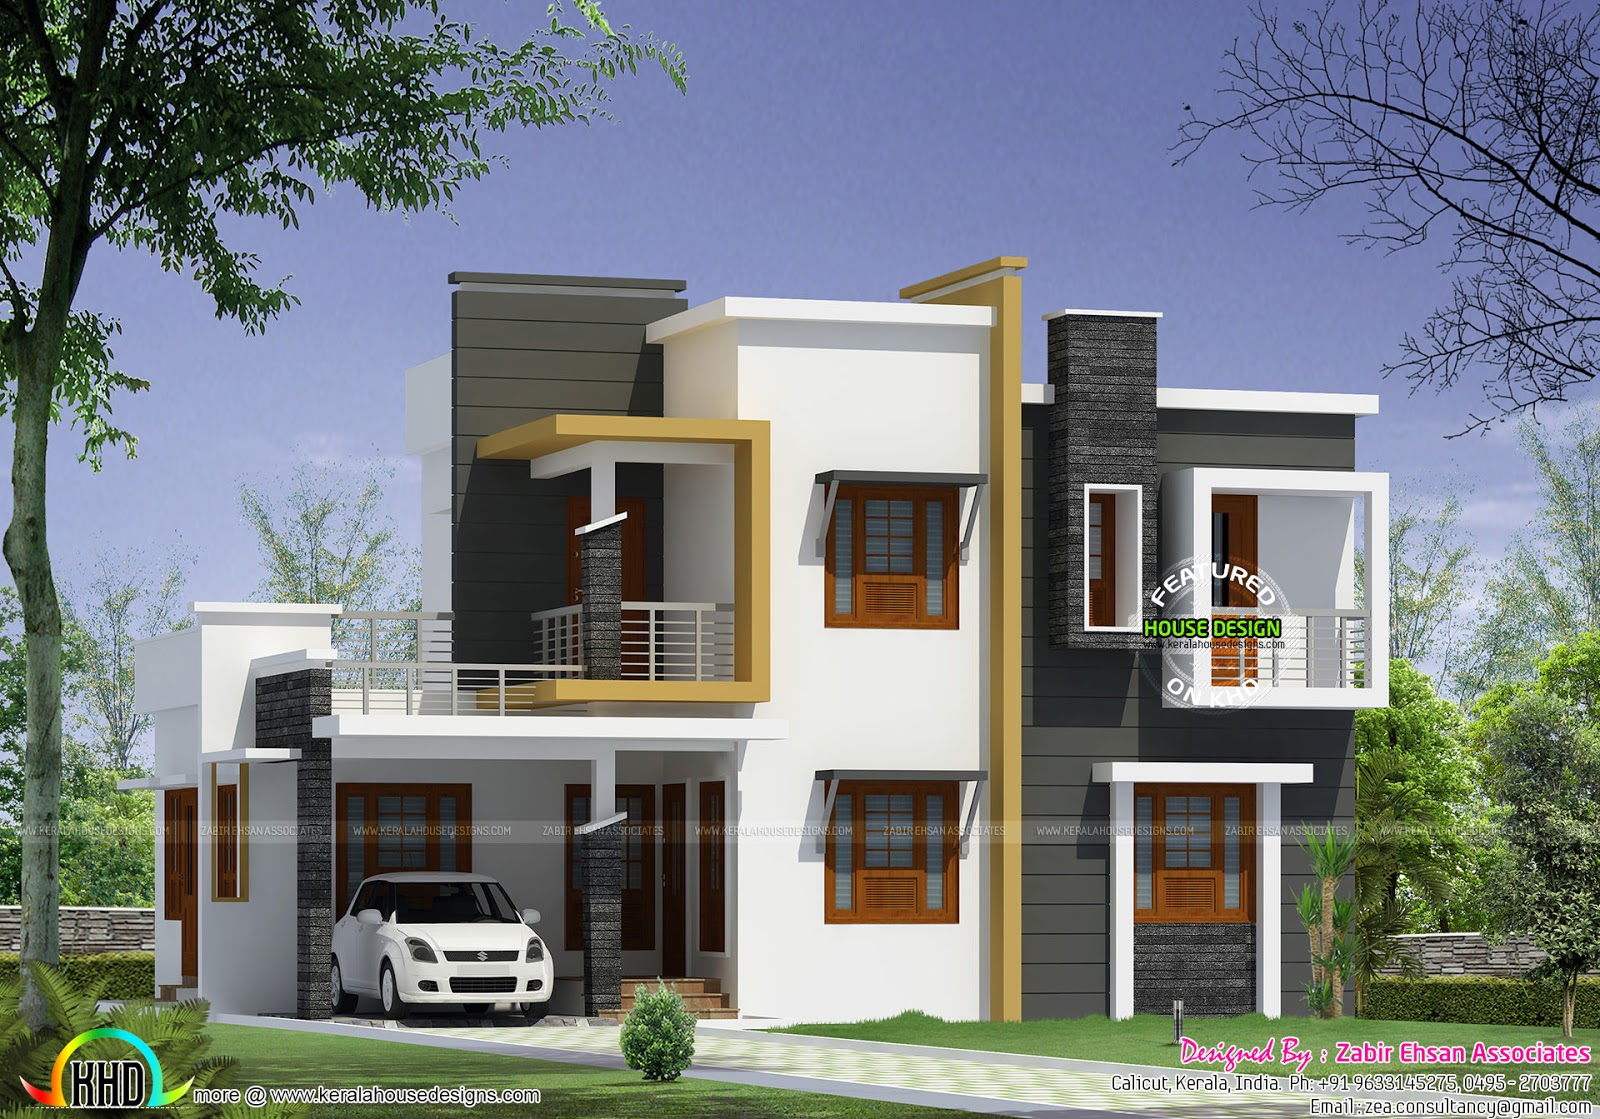 Box type modern house plan kerala home design and floor plans - New house design ...